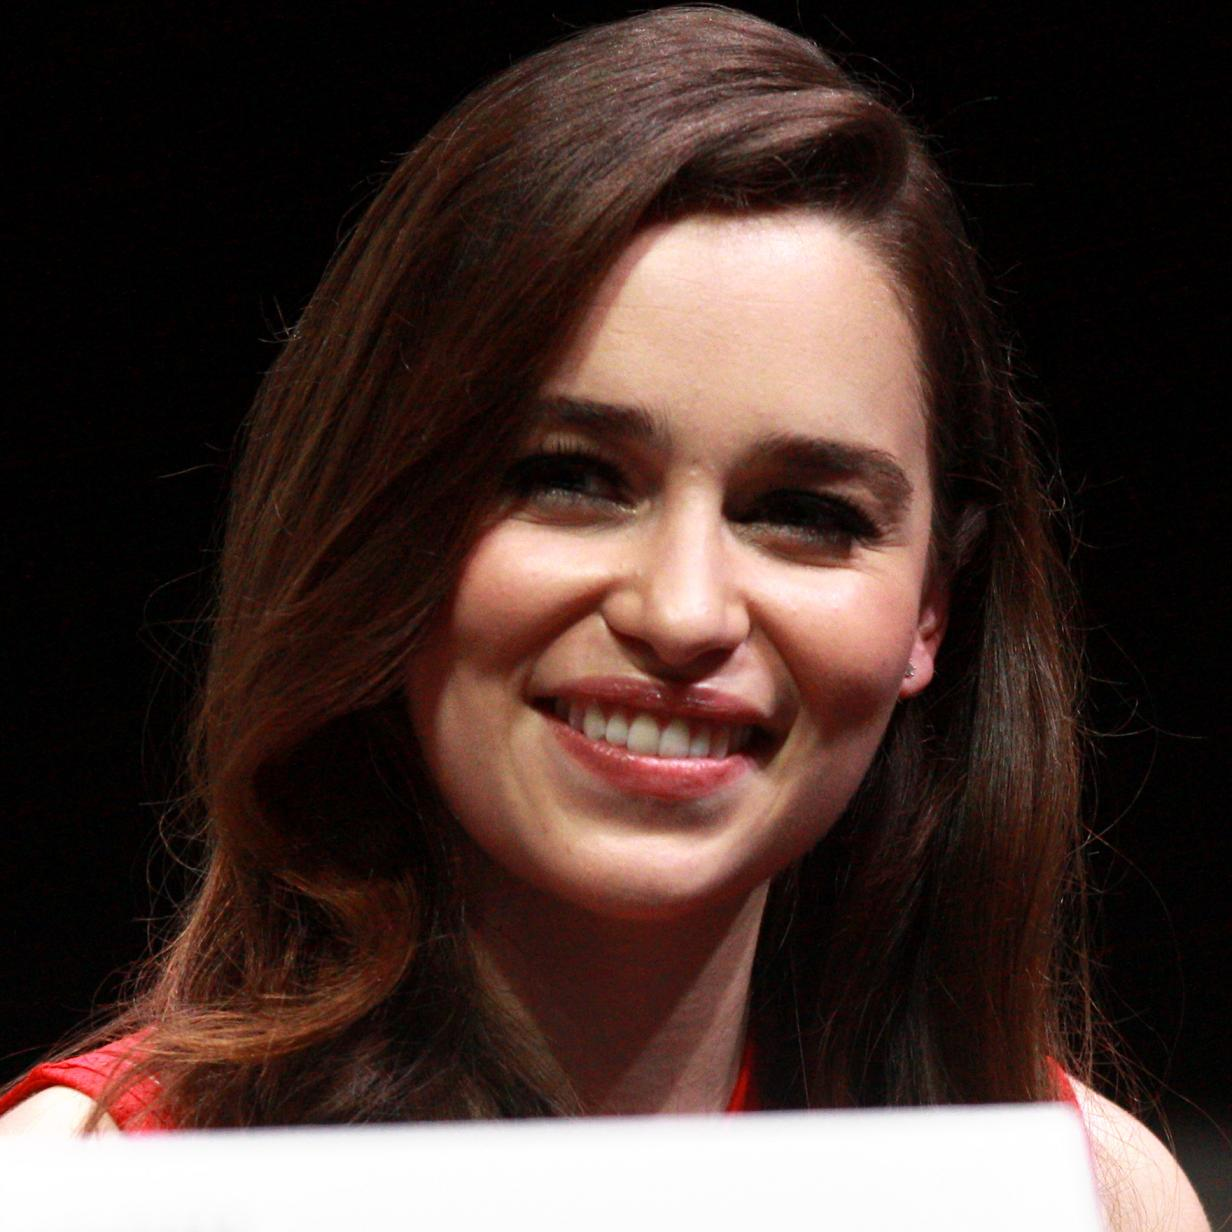 Emilia Clarke Bio, Net Worth, Facts